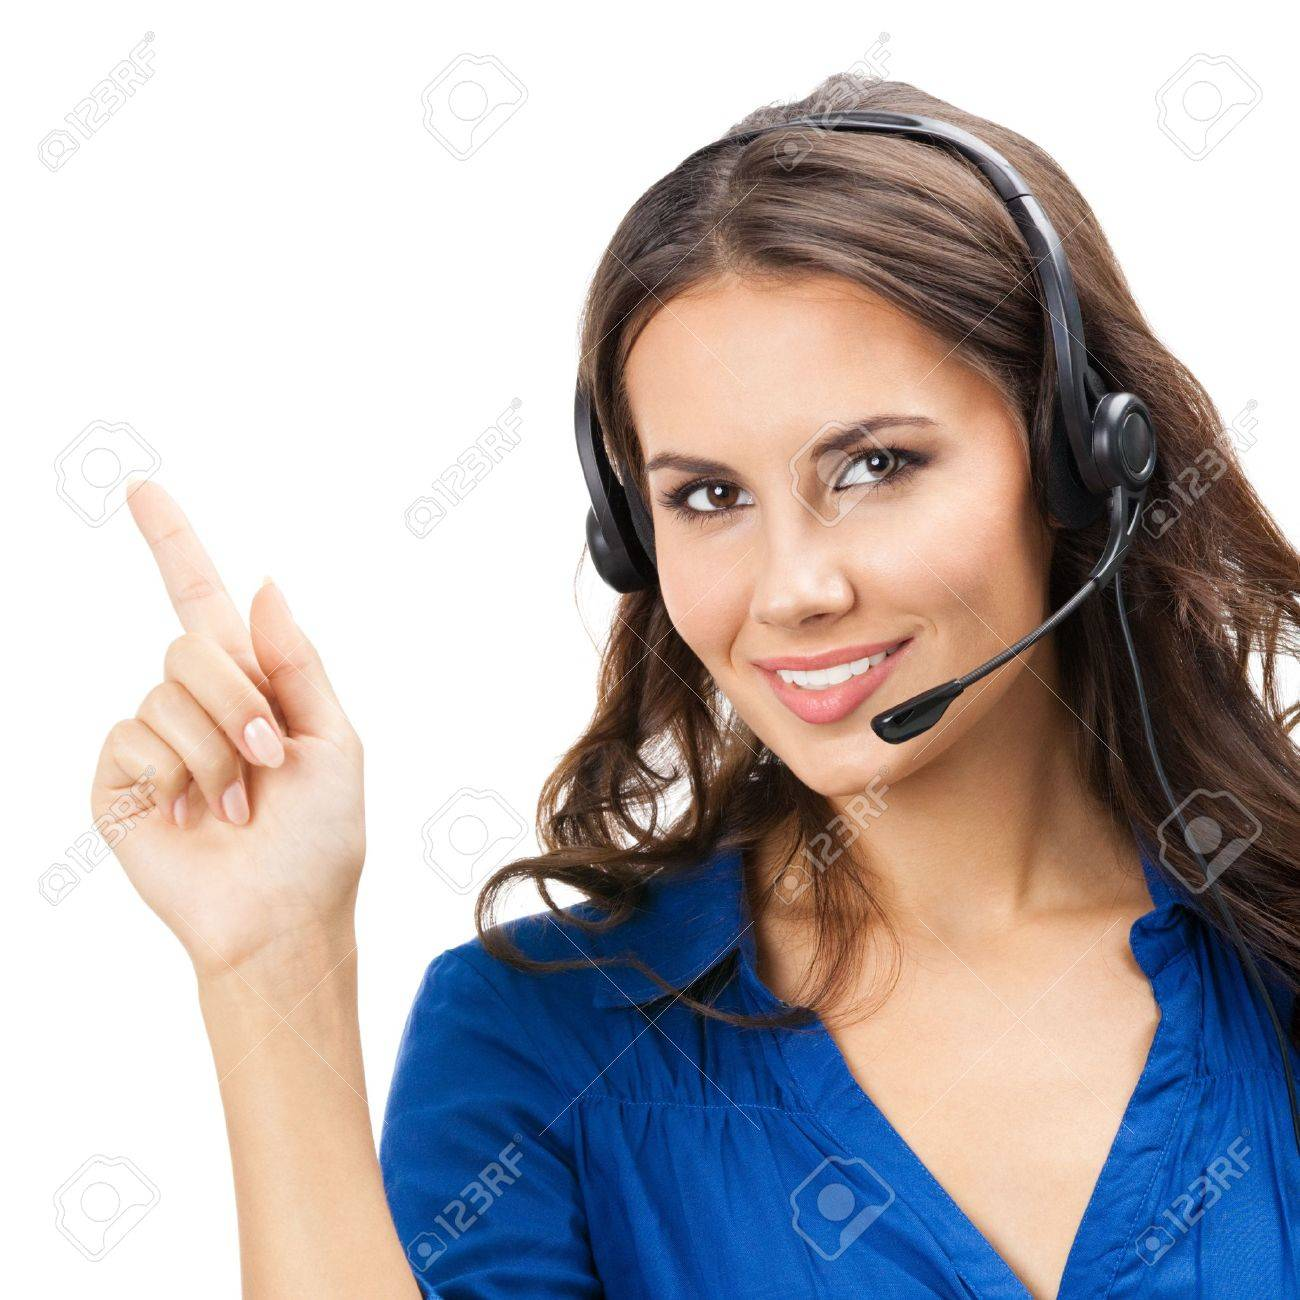 Portrait of happy smiling cheerful beautiful young support phone operator showing, isolated over white background Stock Photo - 20406258